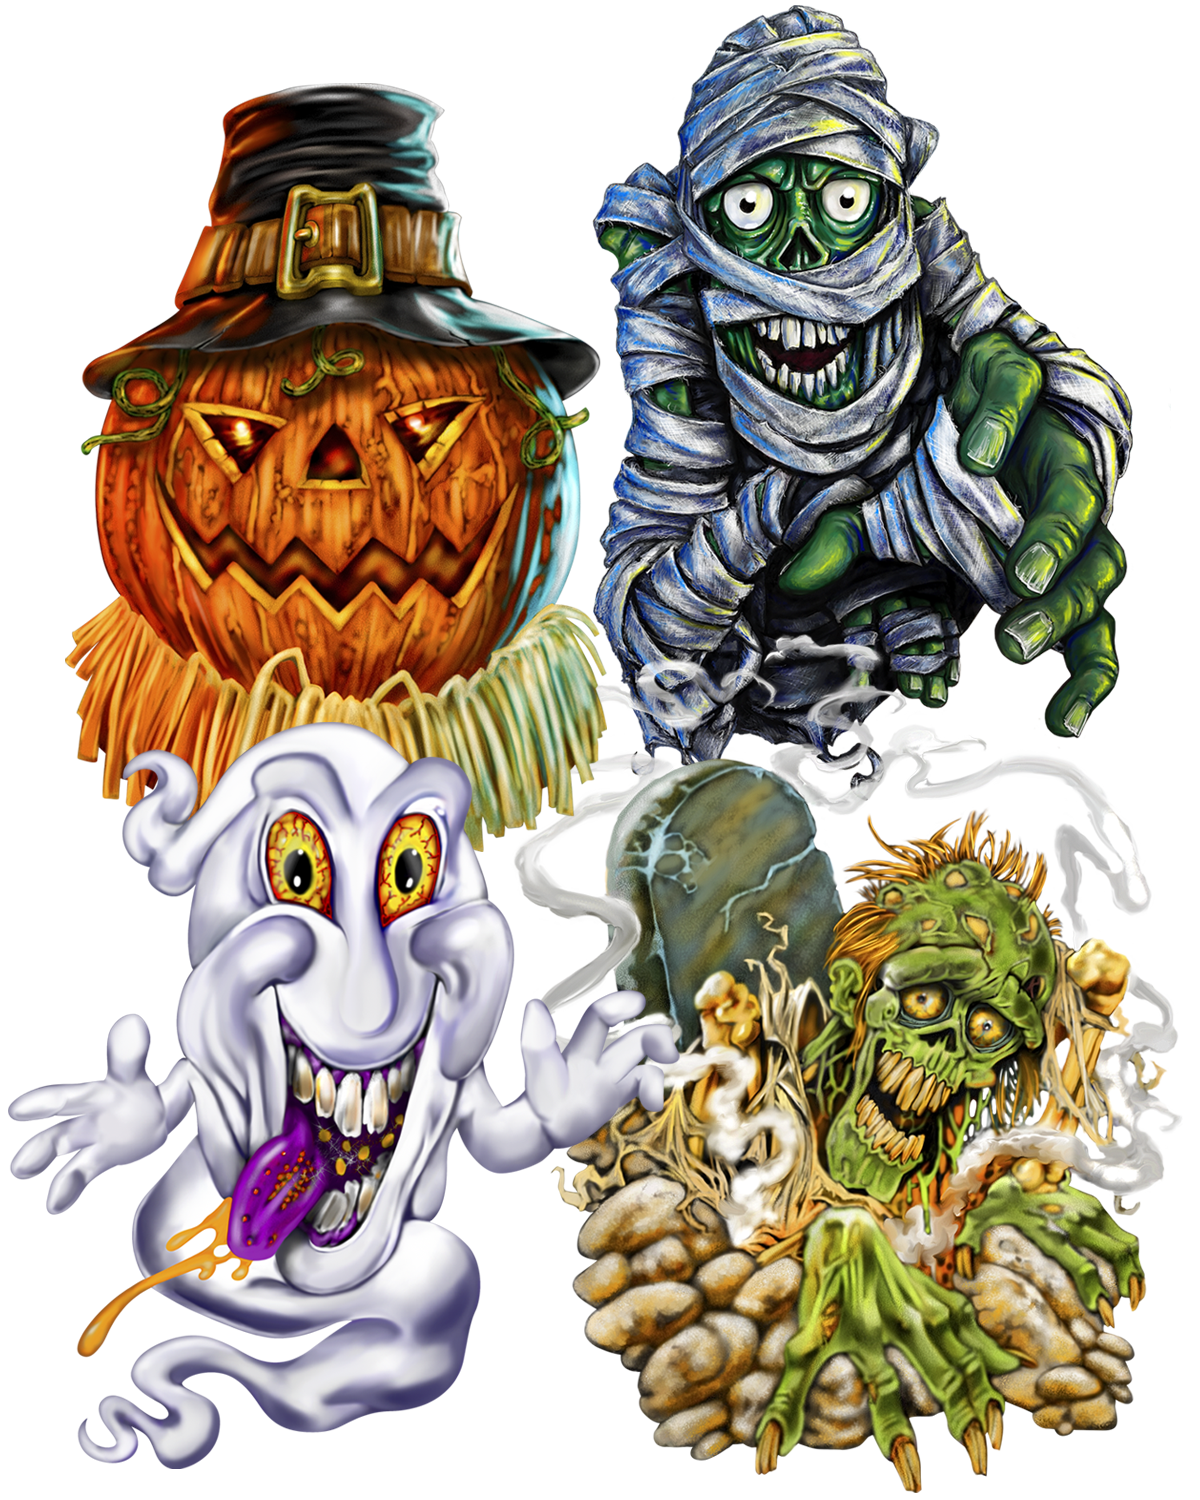 Clipart halloween decorations banner library library Graphics Archives - Page 2 of 9 - July 31, 2018 banner library library